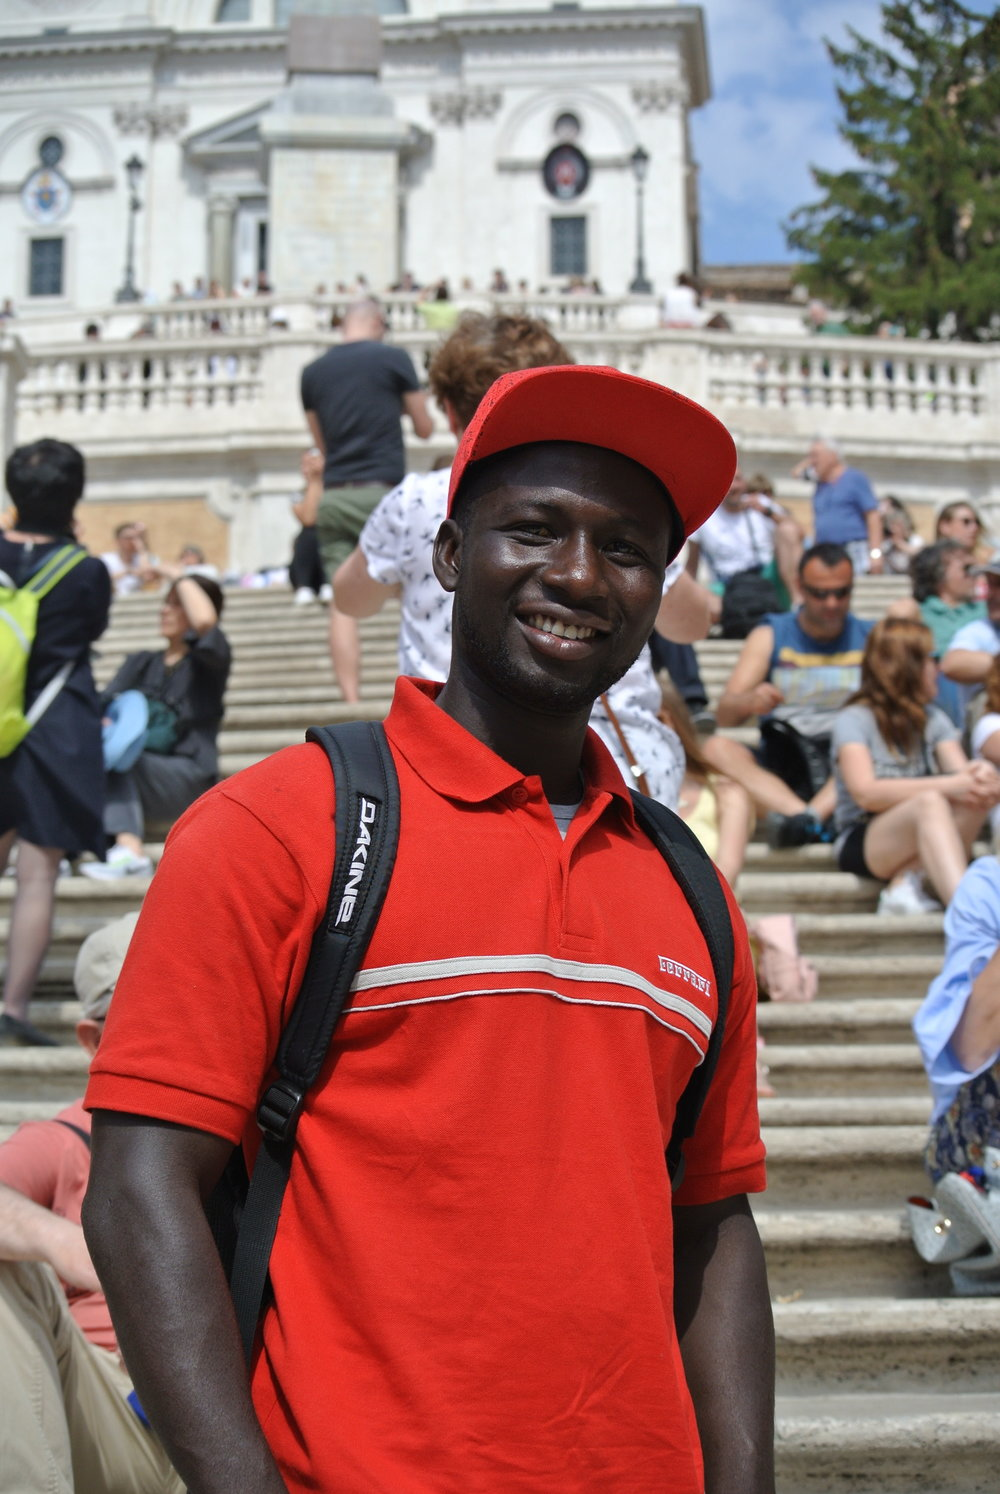 At the Spanish Steps in central Rome, May 2017.